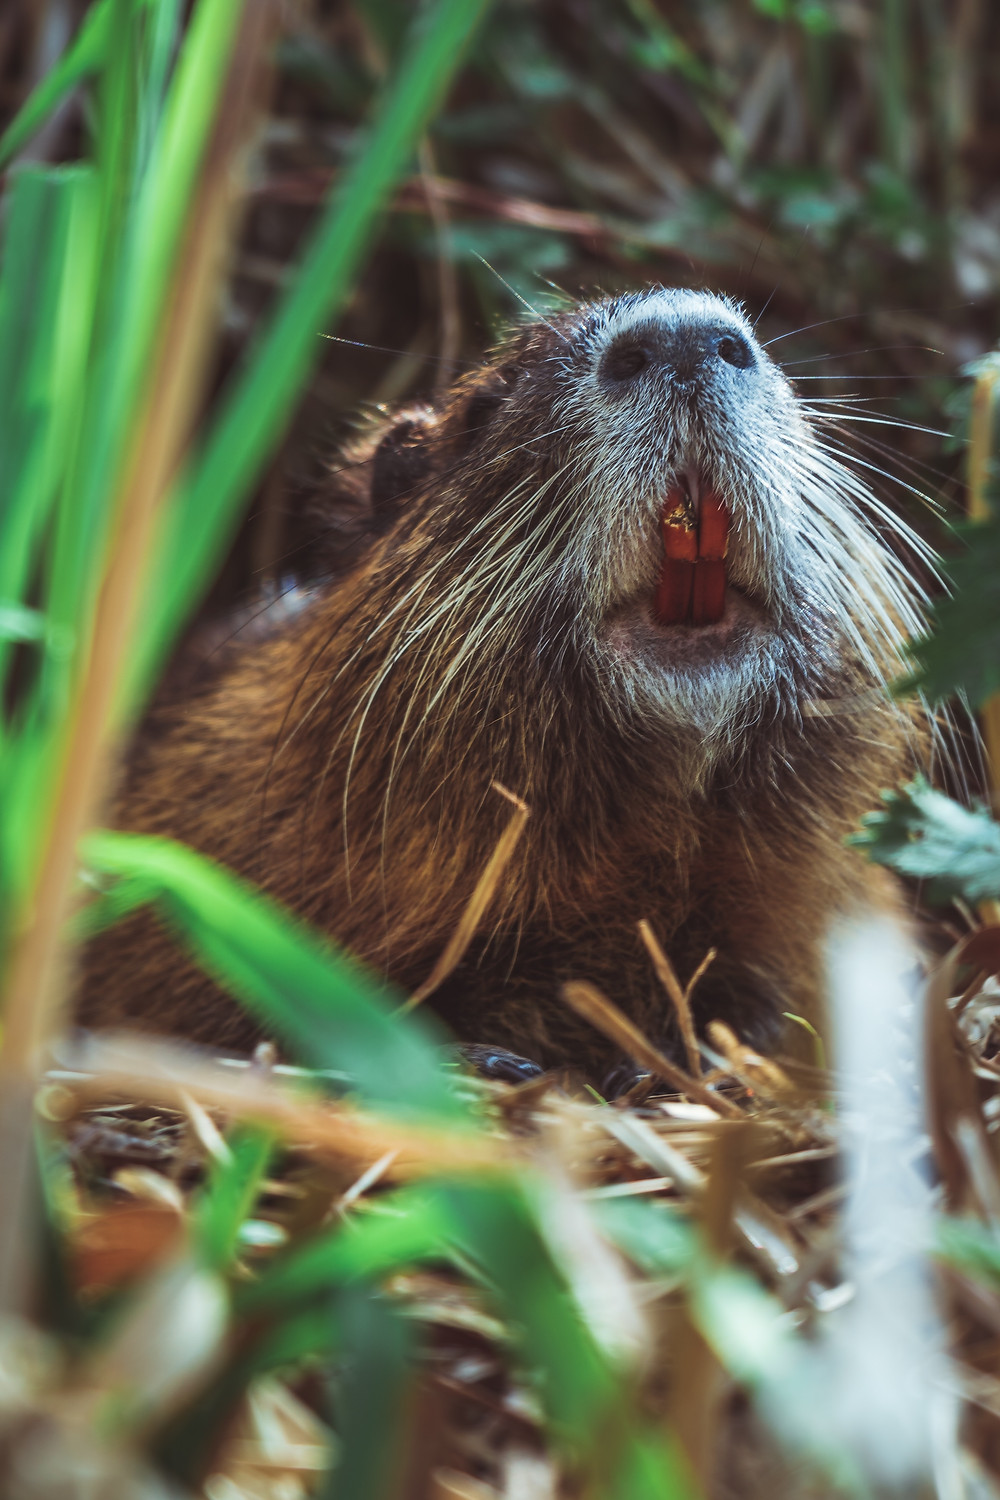 Beavers not responsible for tree loss